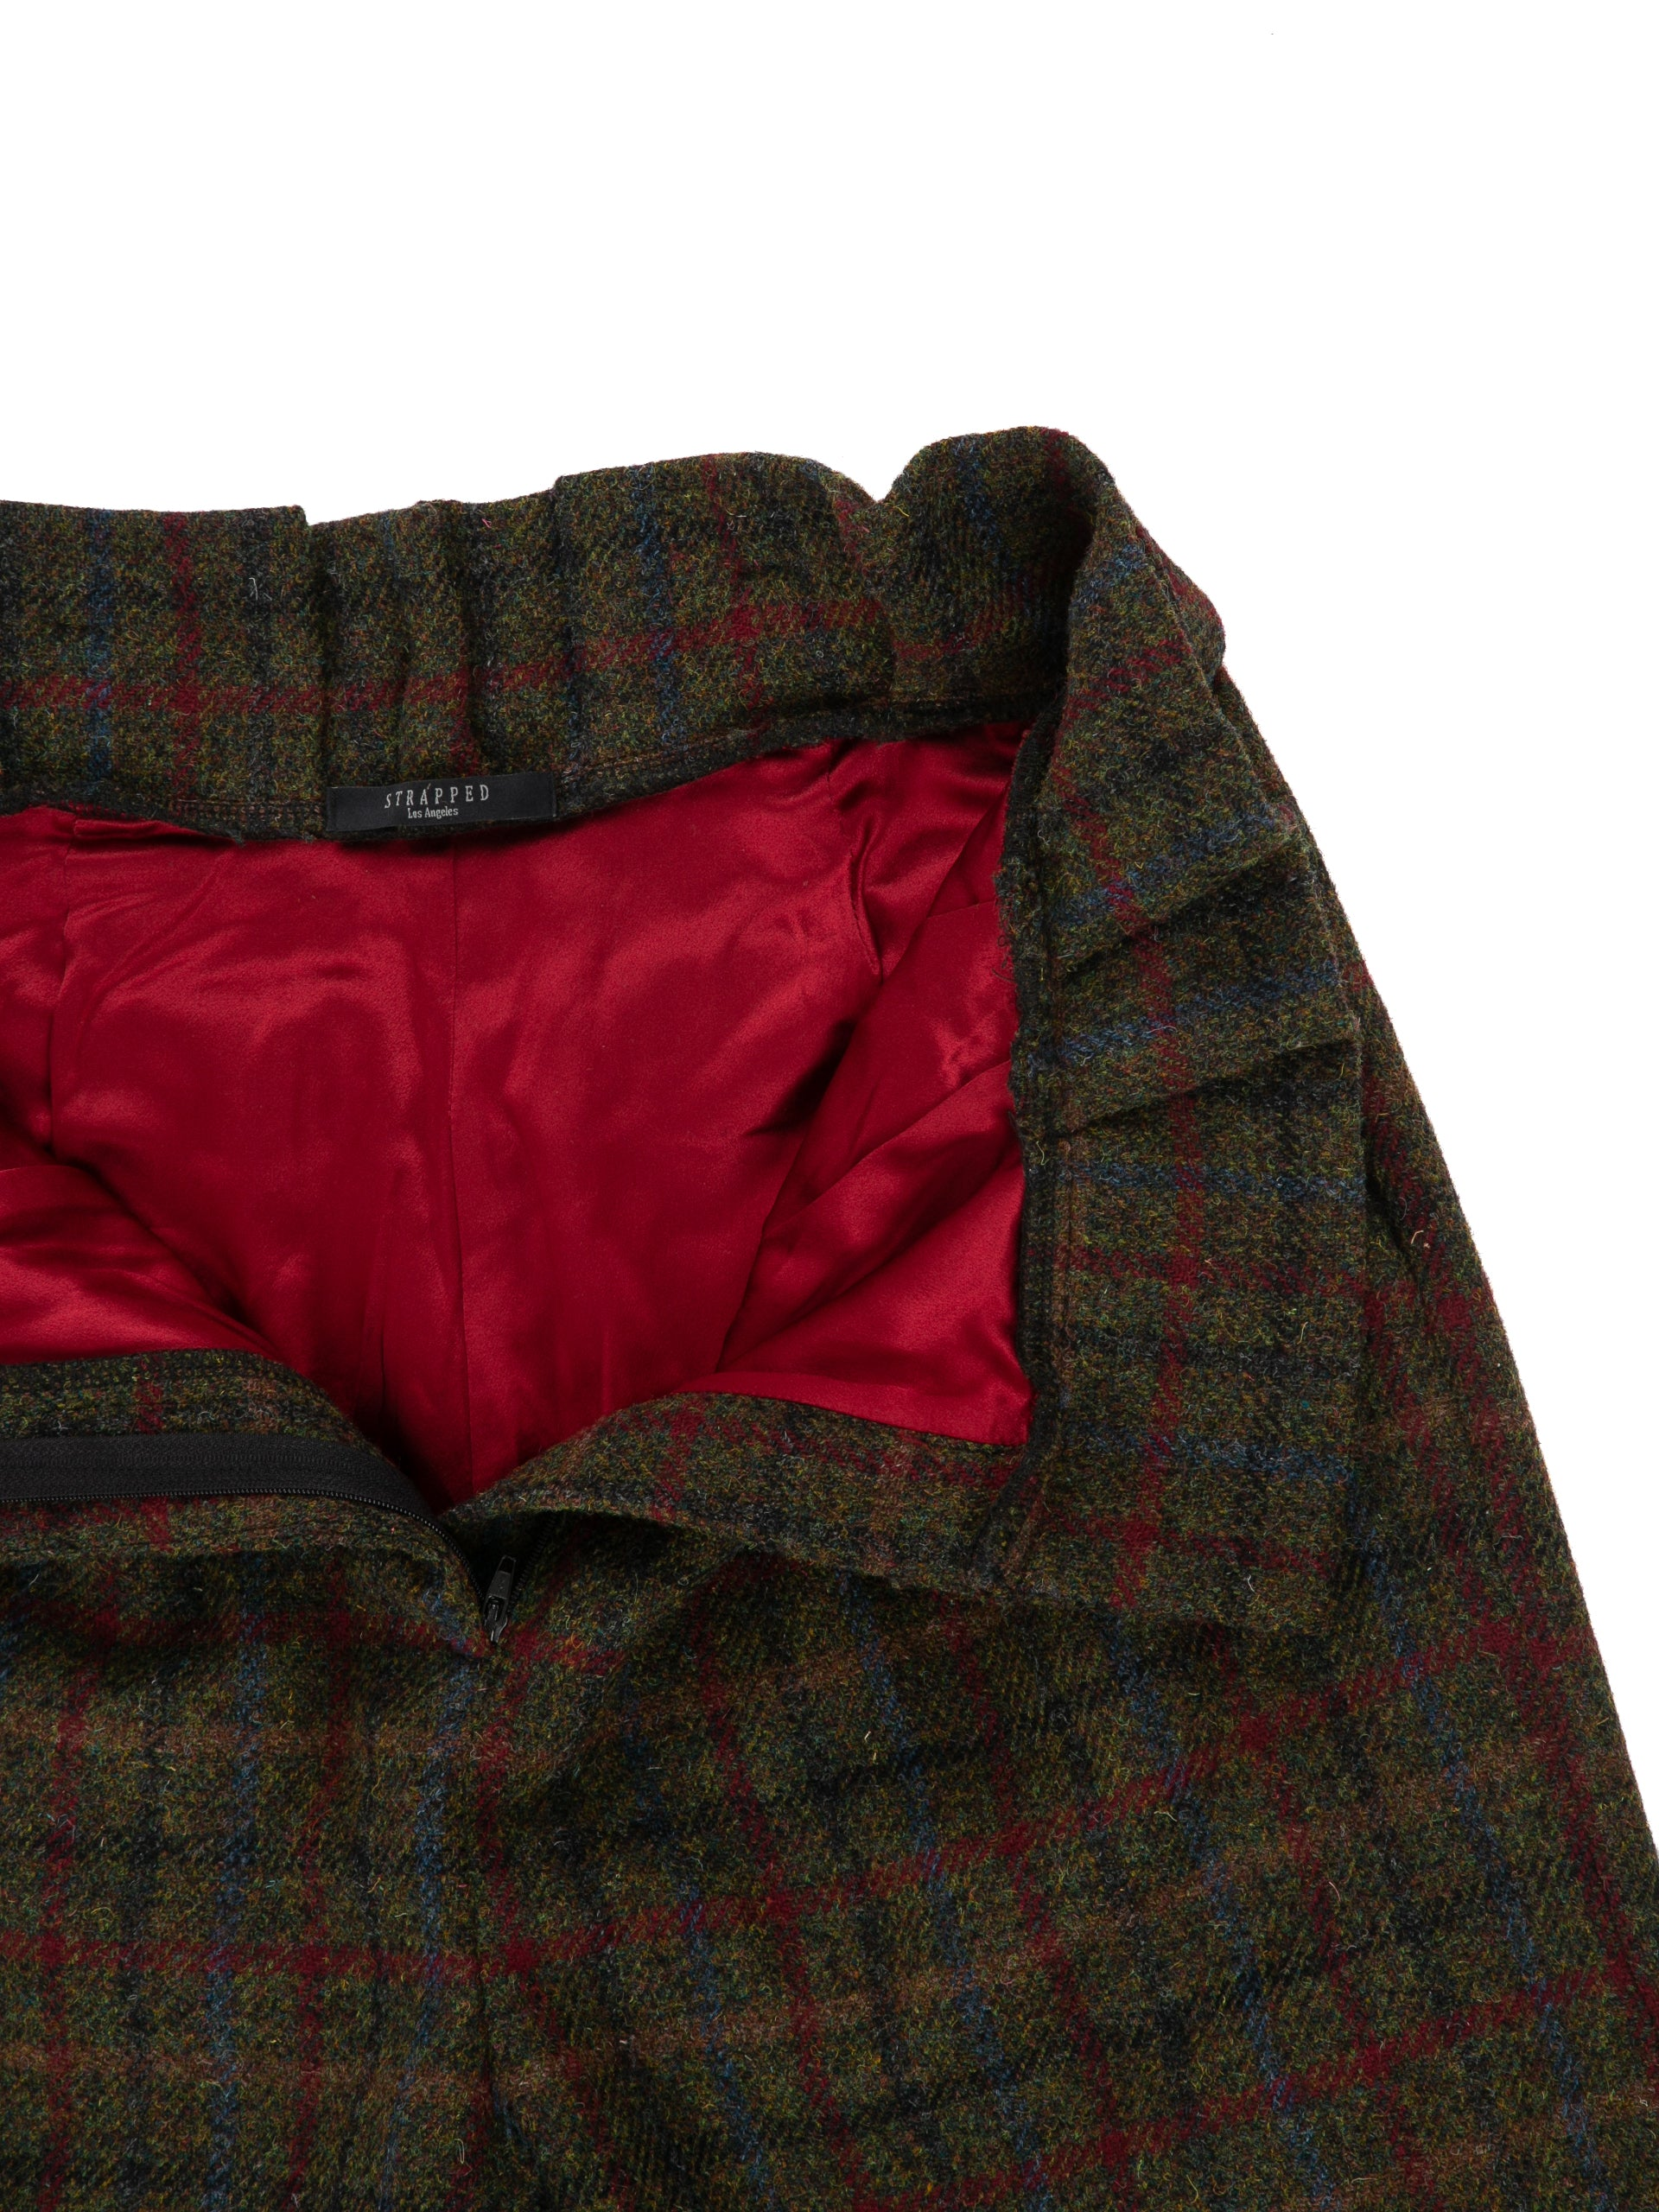 Opened front of Cinch Pant in Forest Plaid